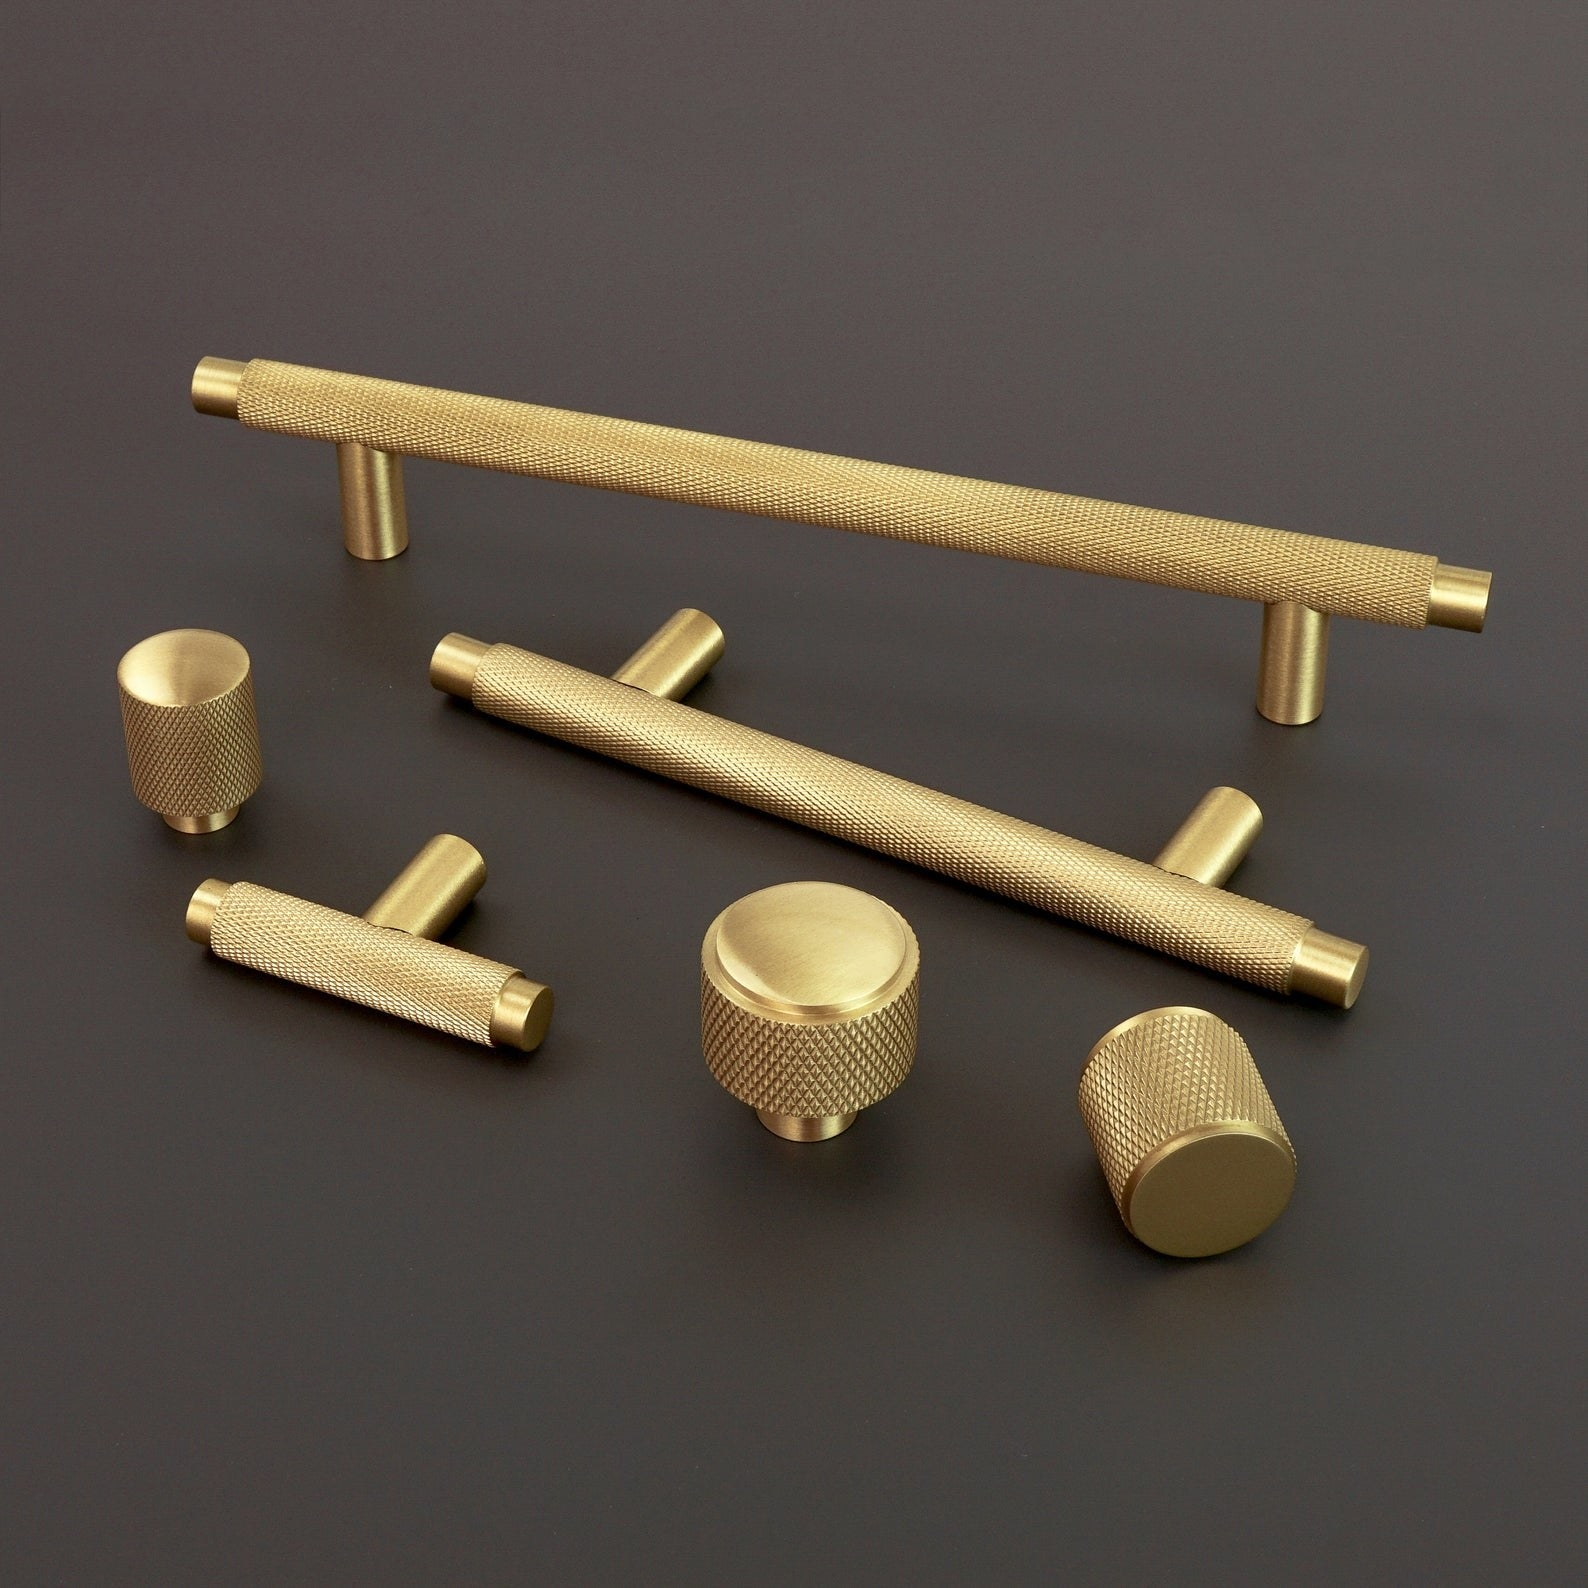 three knurled solid brass pulls and three knurled solid brass knobs on a black surface